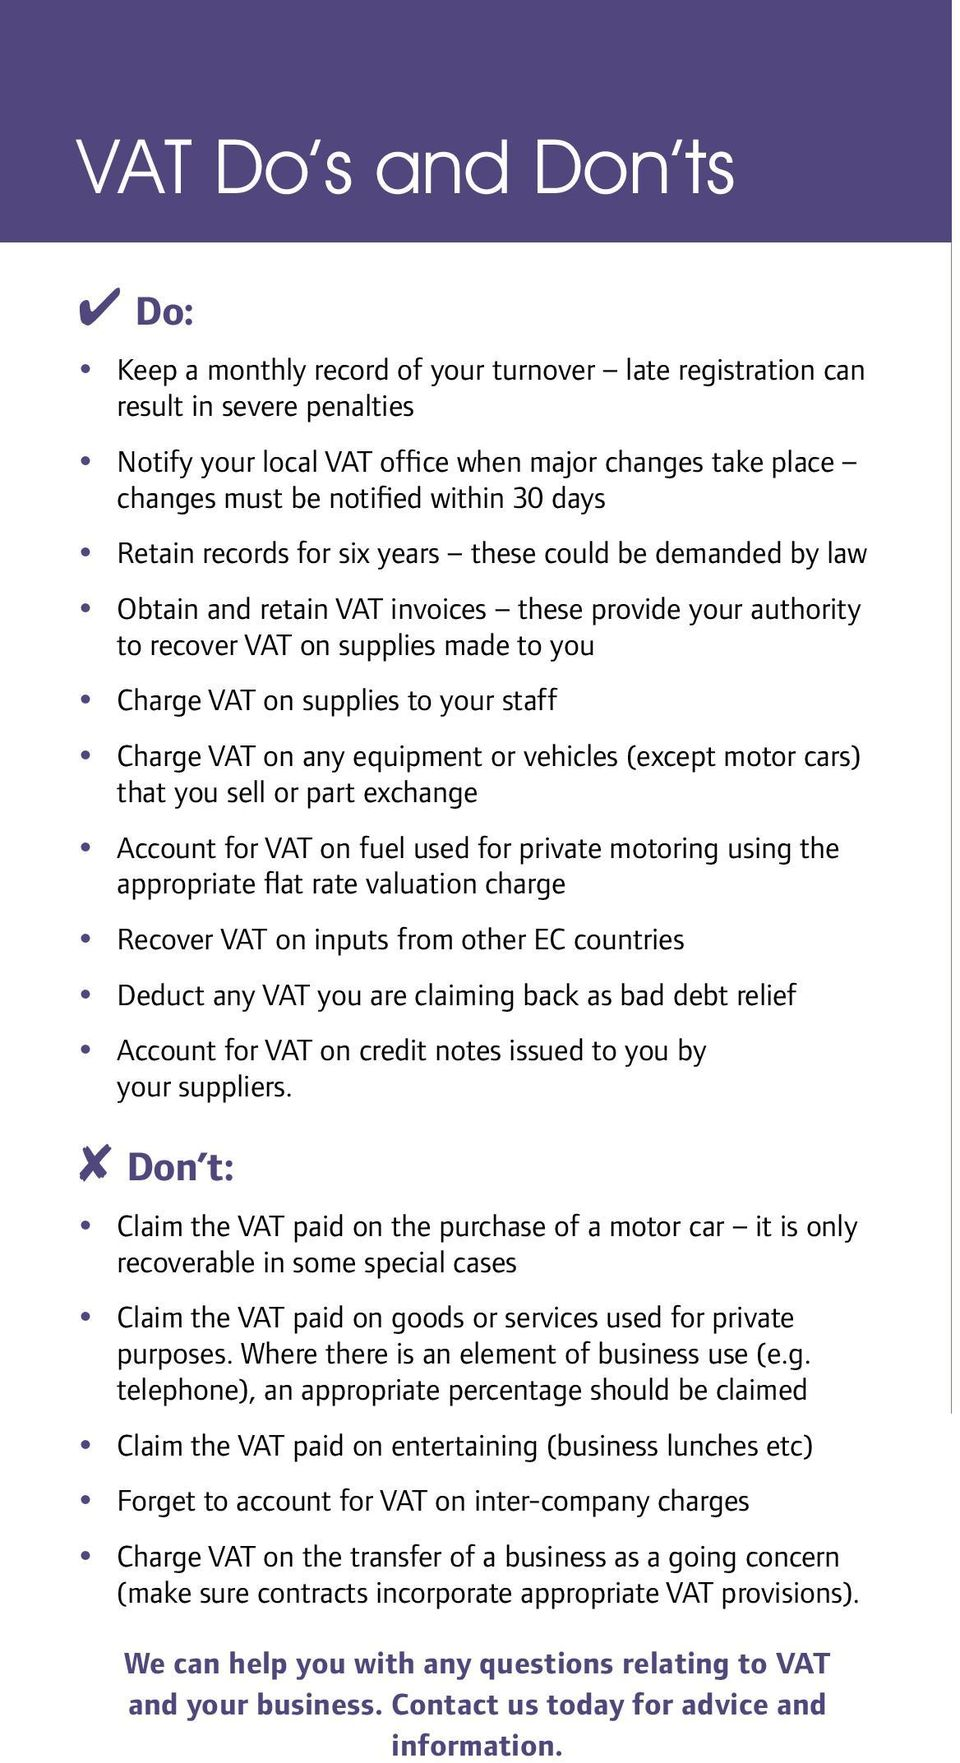 VAT on supplies to your staff Charge VAT on any equipment or vehicles (except motor cars) that you sell or part exchange Account for VAT on fuel used for private motoring using the appropriate flat